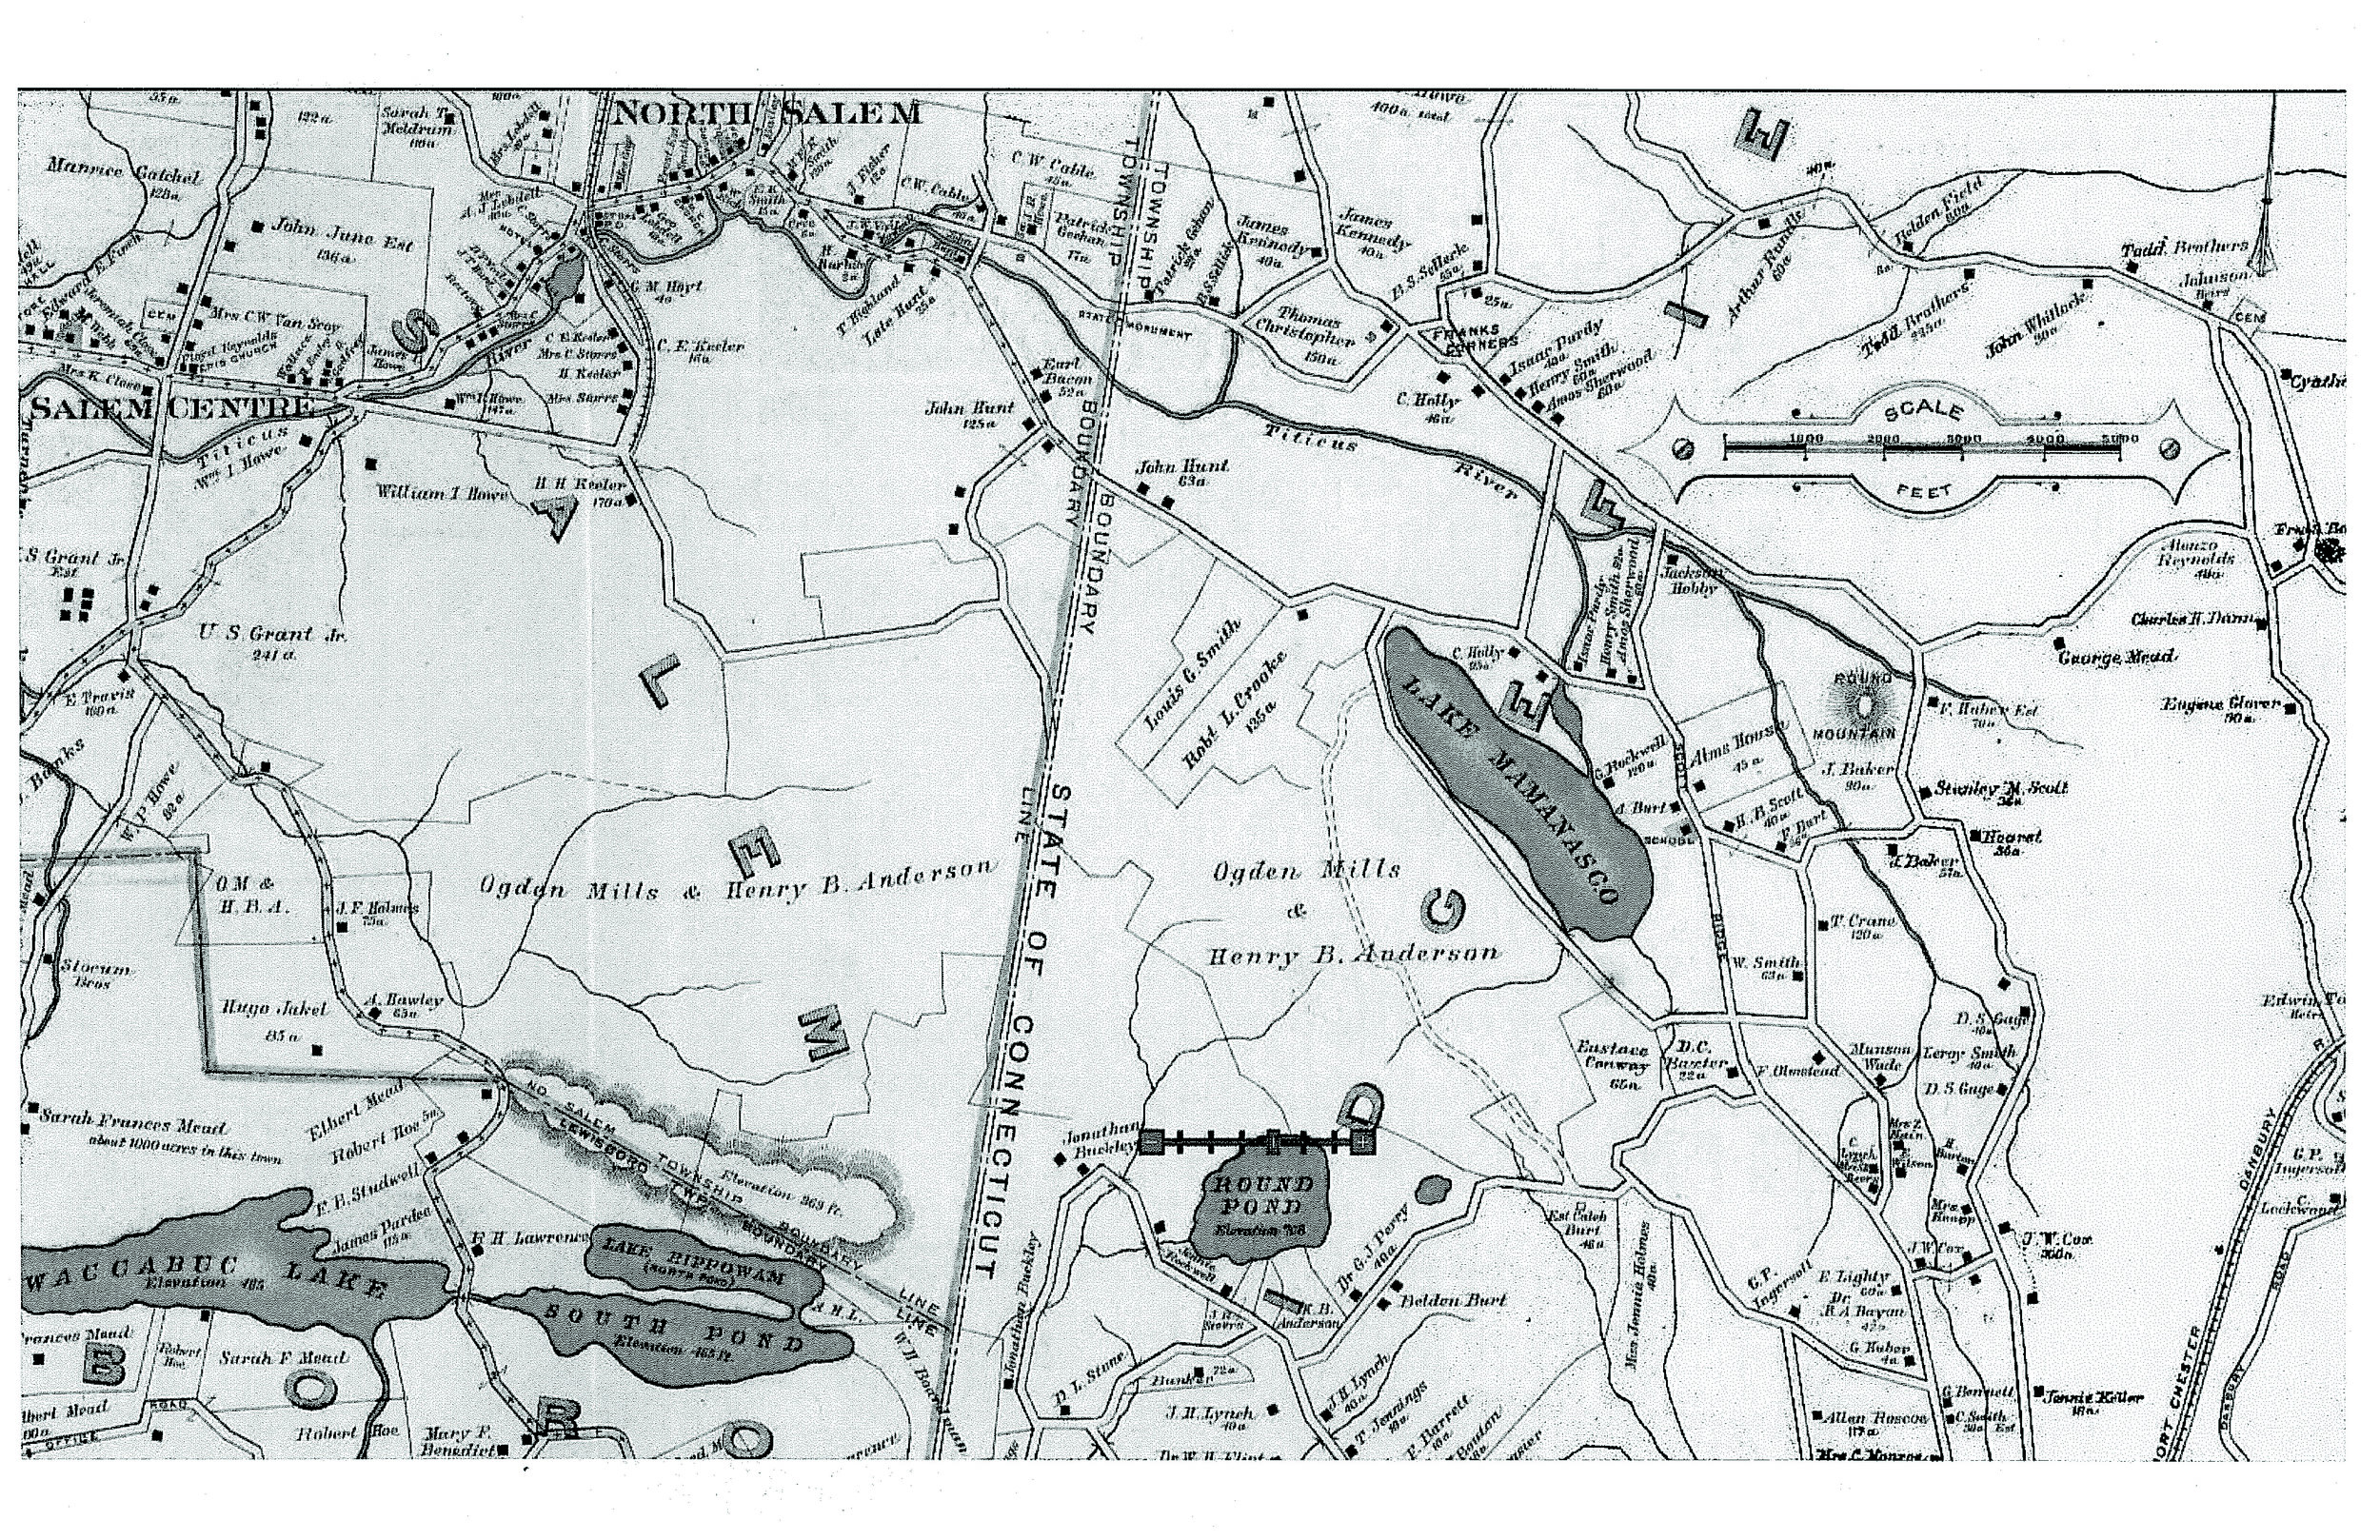 This map from a 1908 atlas shows the extent of the lands purchased in Ridgefield, CT and North Salem, NY by Henry B. Anderson and his partner, Ogden Mills, for the Port of Missing Men. ( Courtesy North Salem   Historical Society.